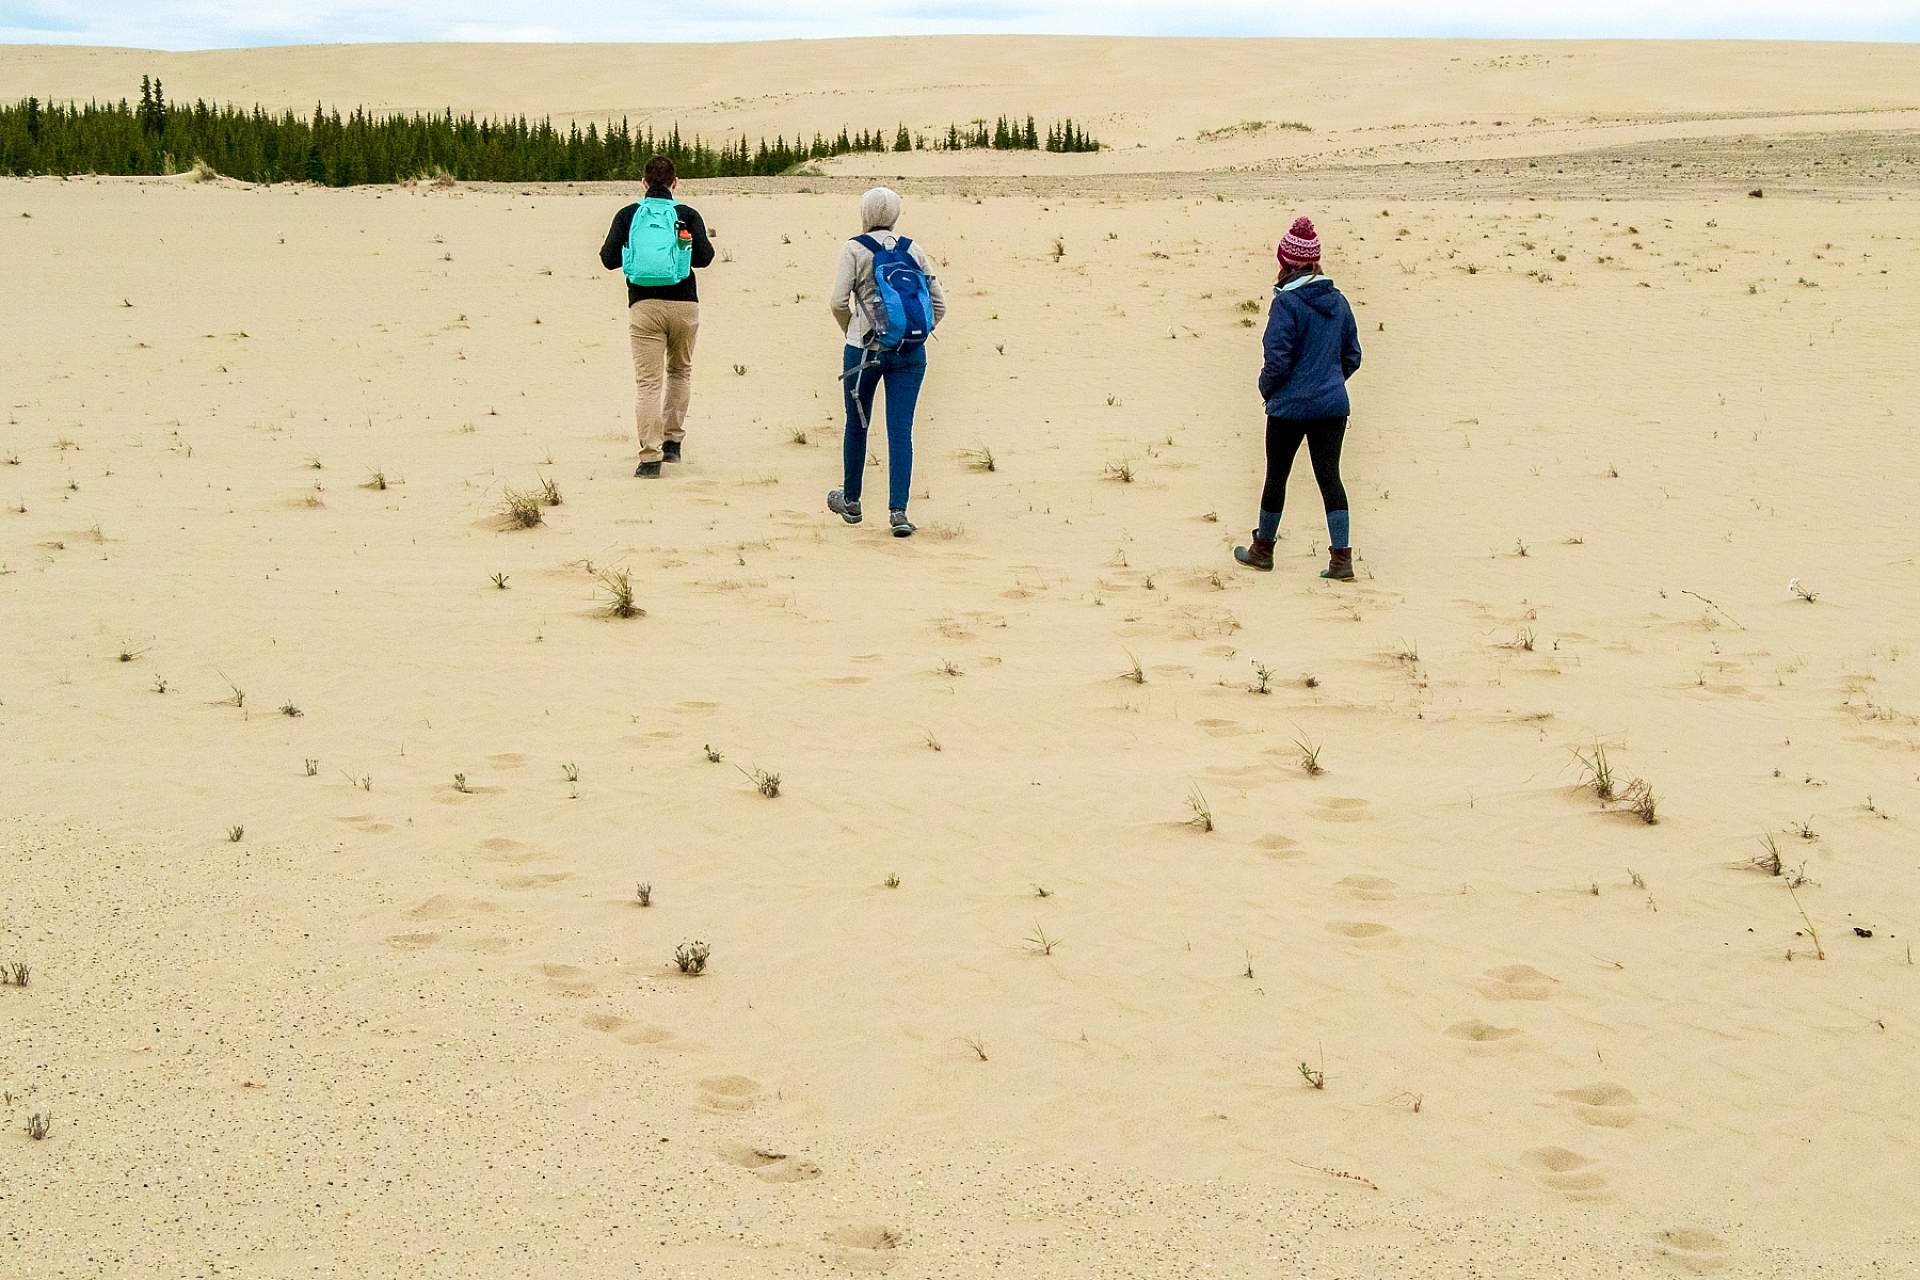 Alexyn and friends walk across the sand dunes in Kobuk Valley national Park